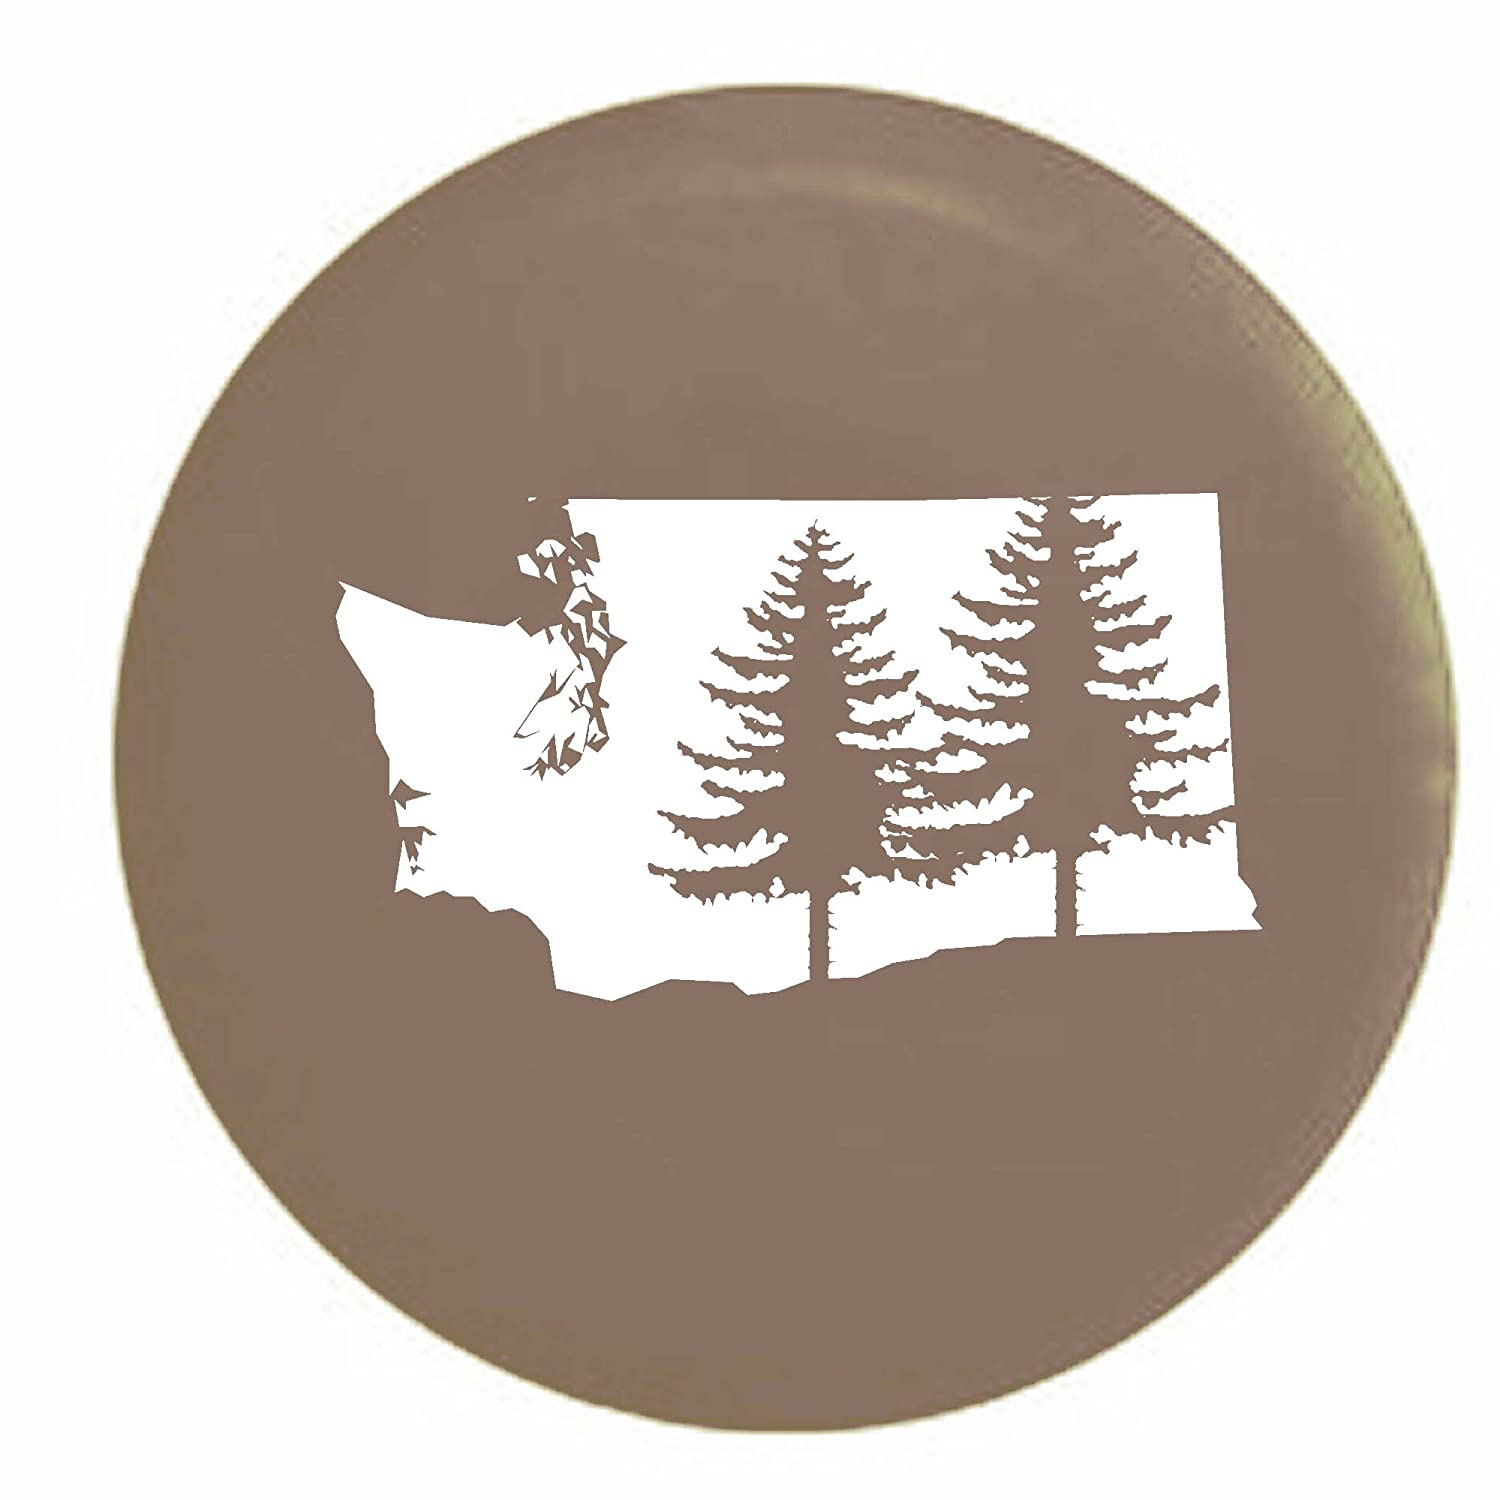 Washington Pine Trees Home State Edition RV Spare Tire Cover OEM Vinyl Black 27.5 in Pike Outdoors